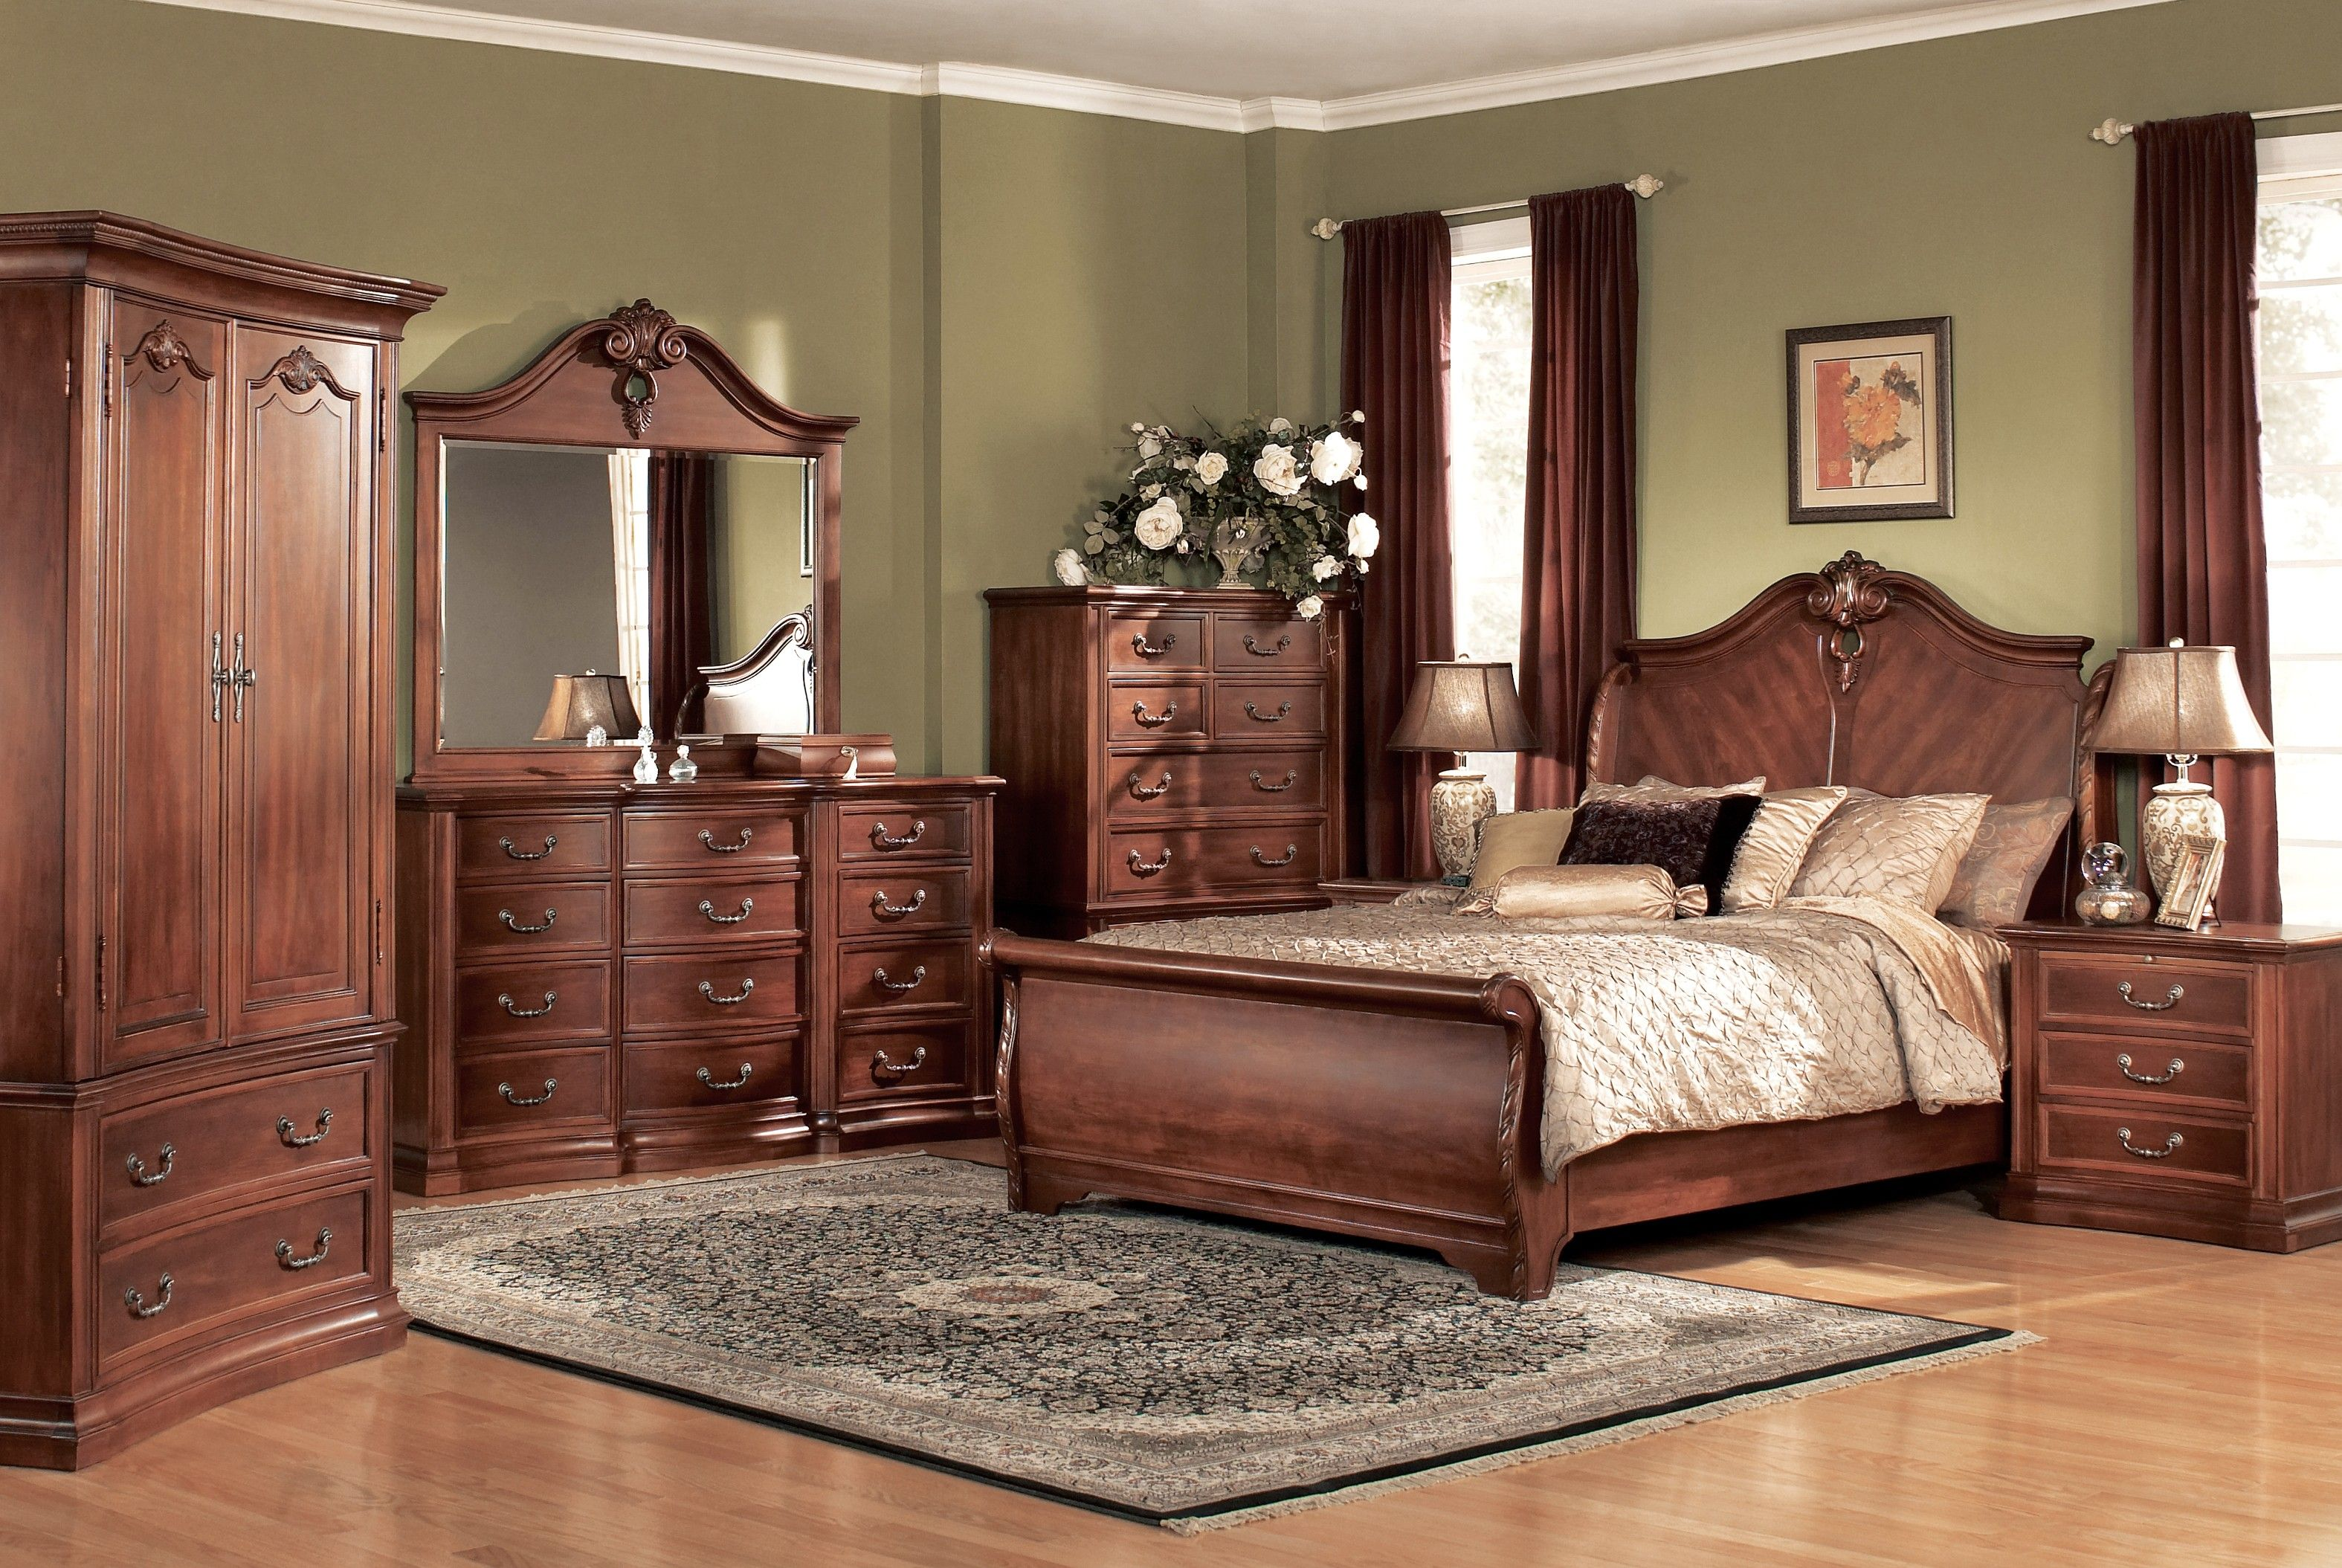 Traditional Bedroom Ideas greatest decorate traditional bedroom design ideas with wardrobe